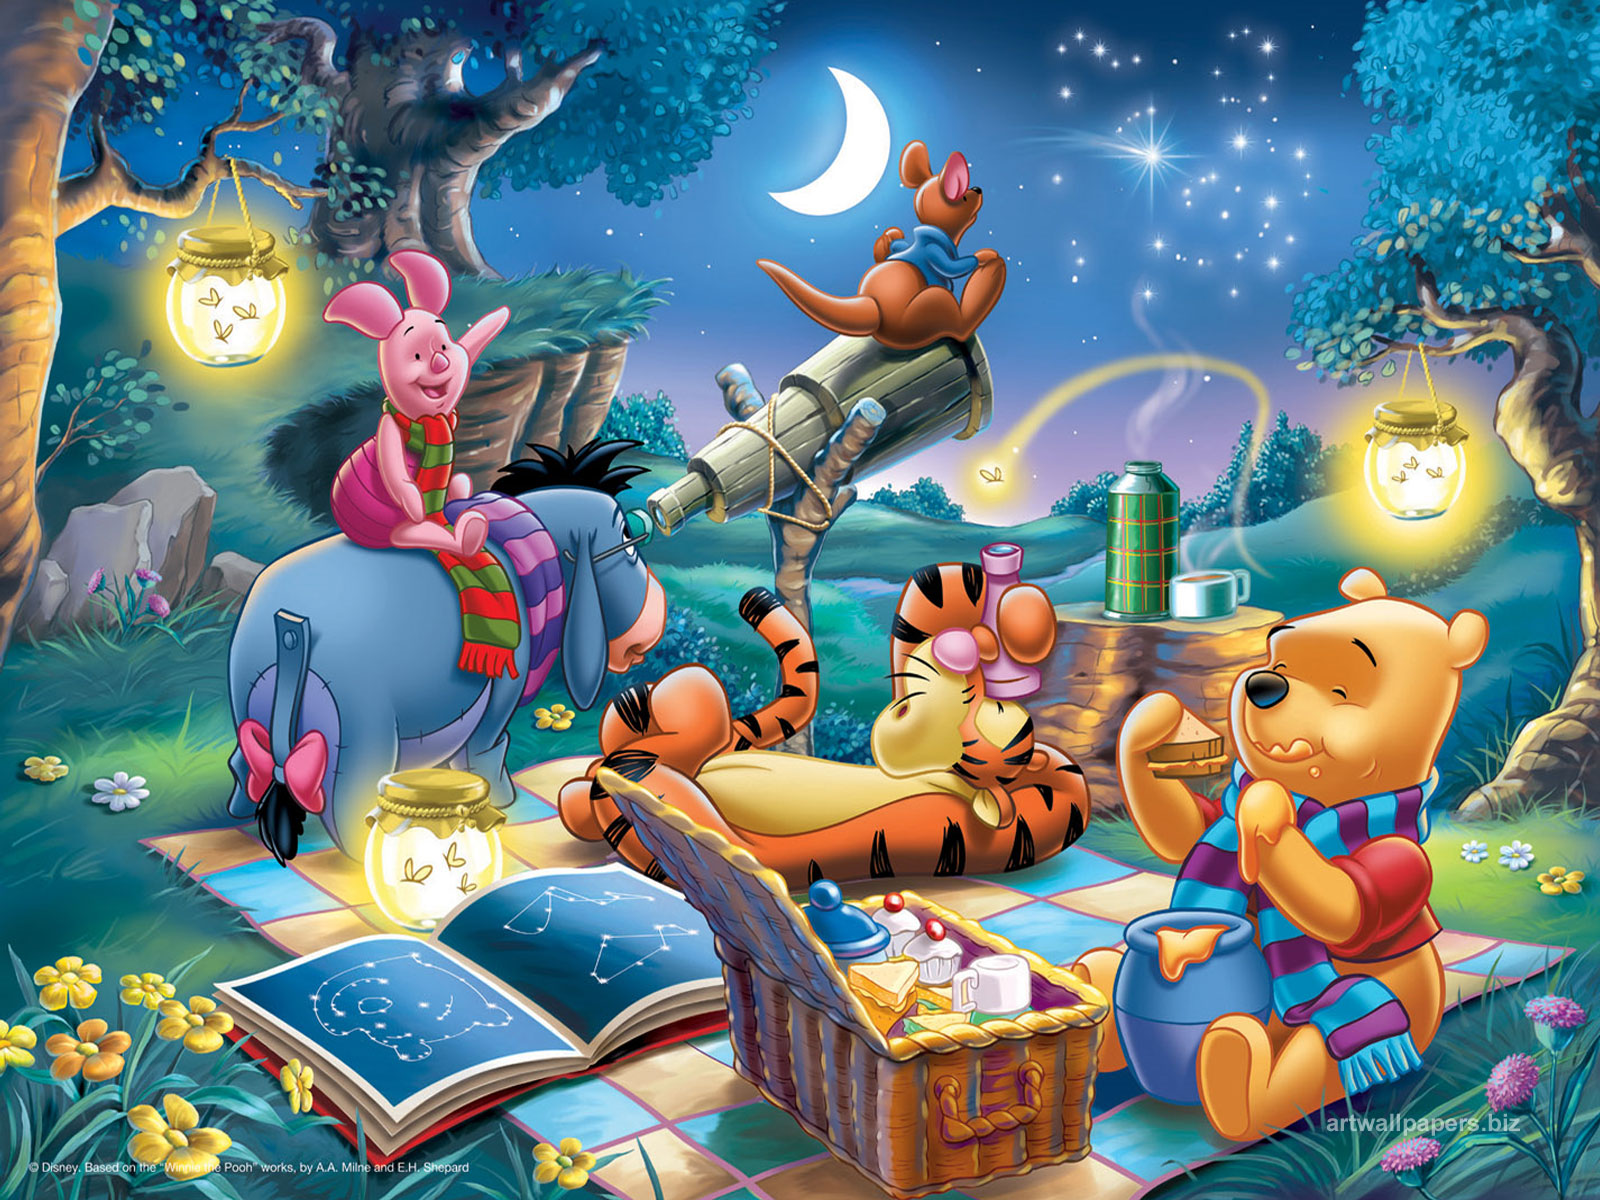 images about Winnie the pooh on Pinterest  Disney, Piglets 1600x1200